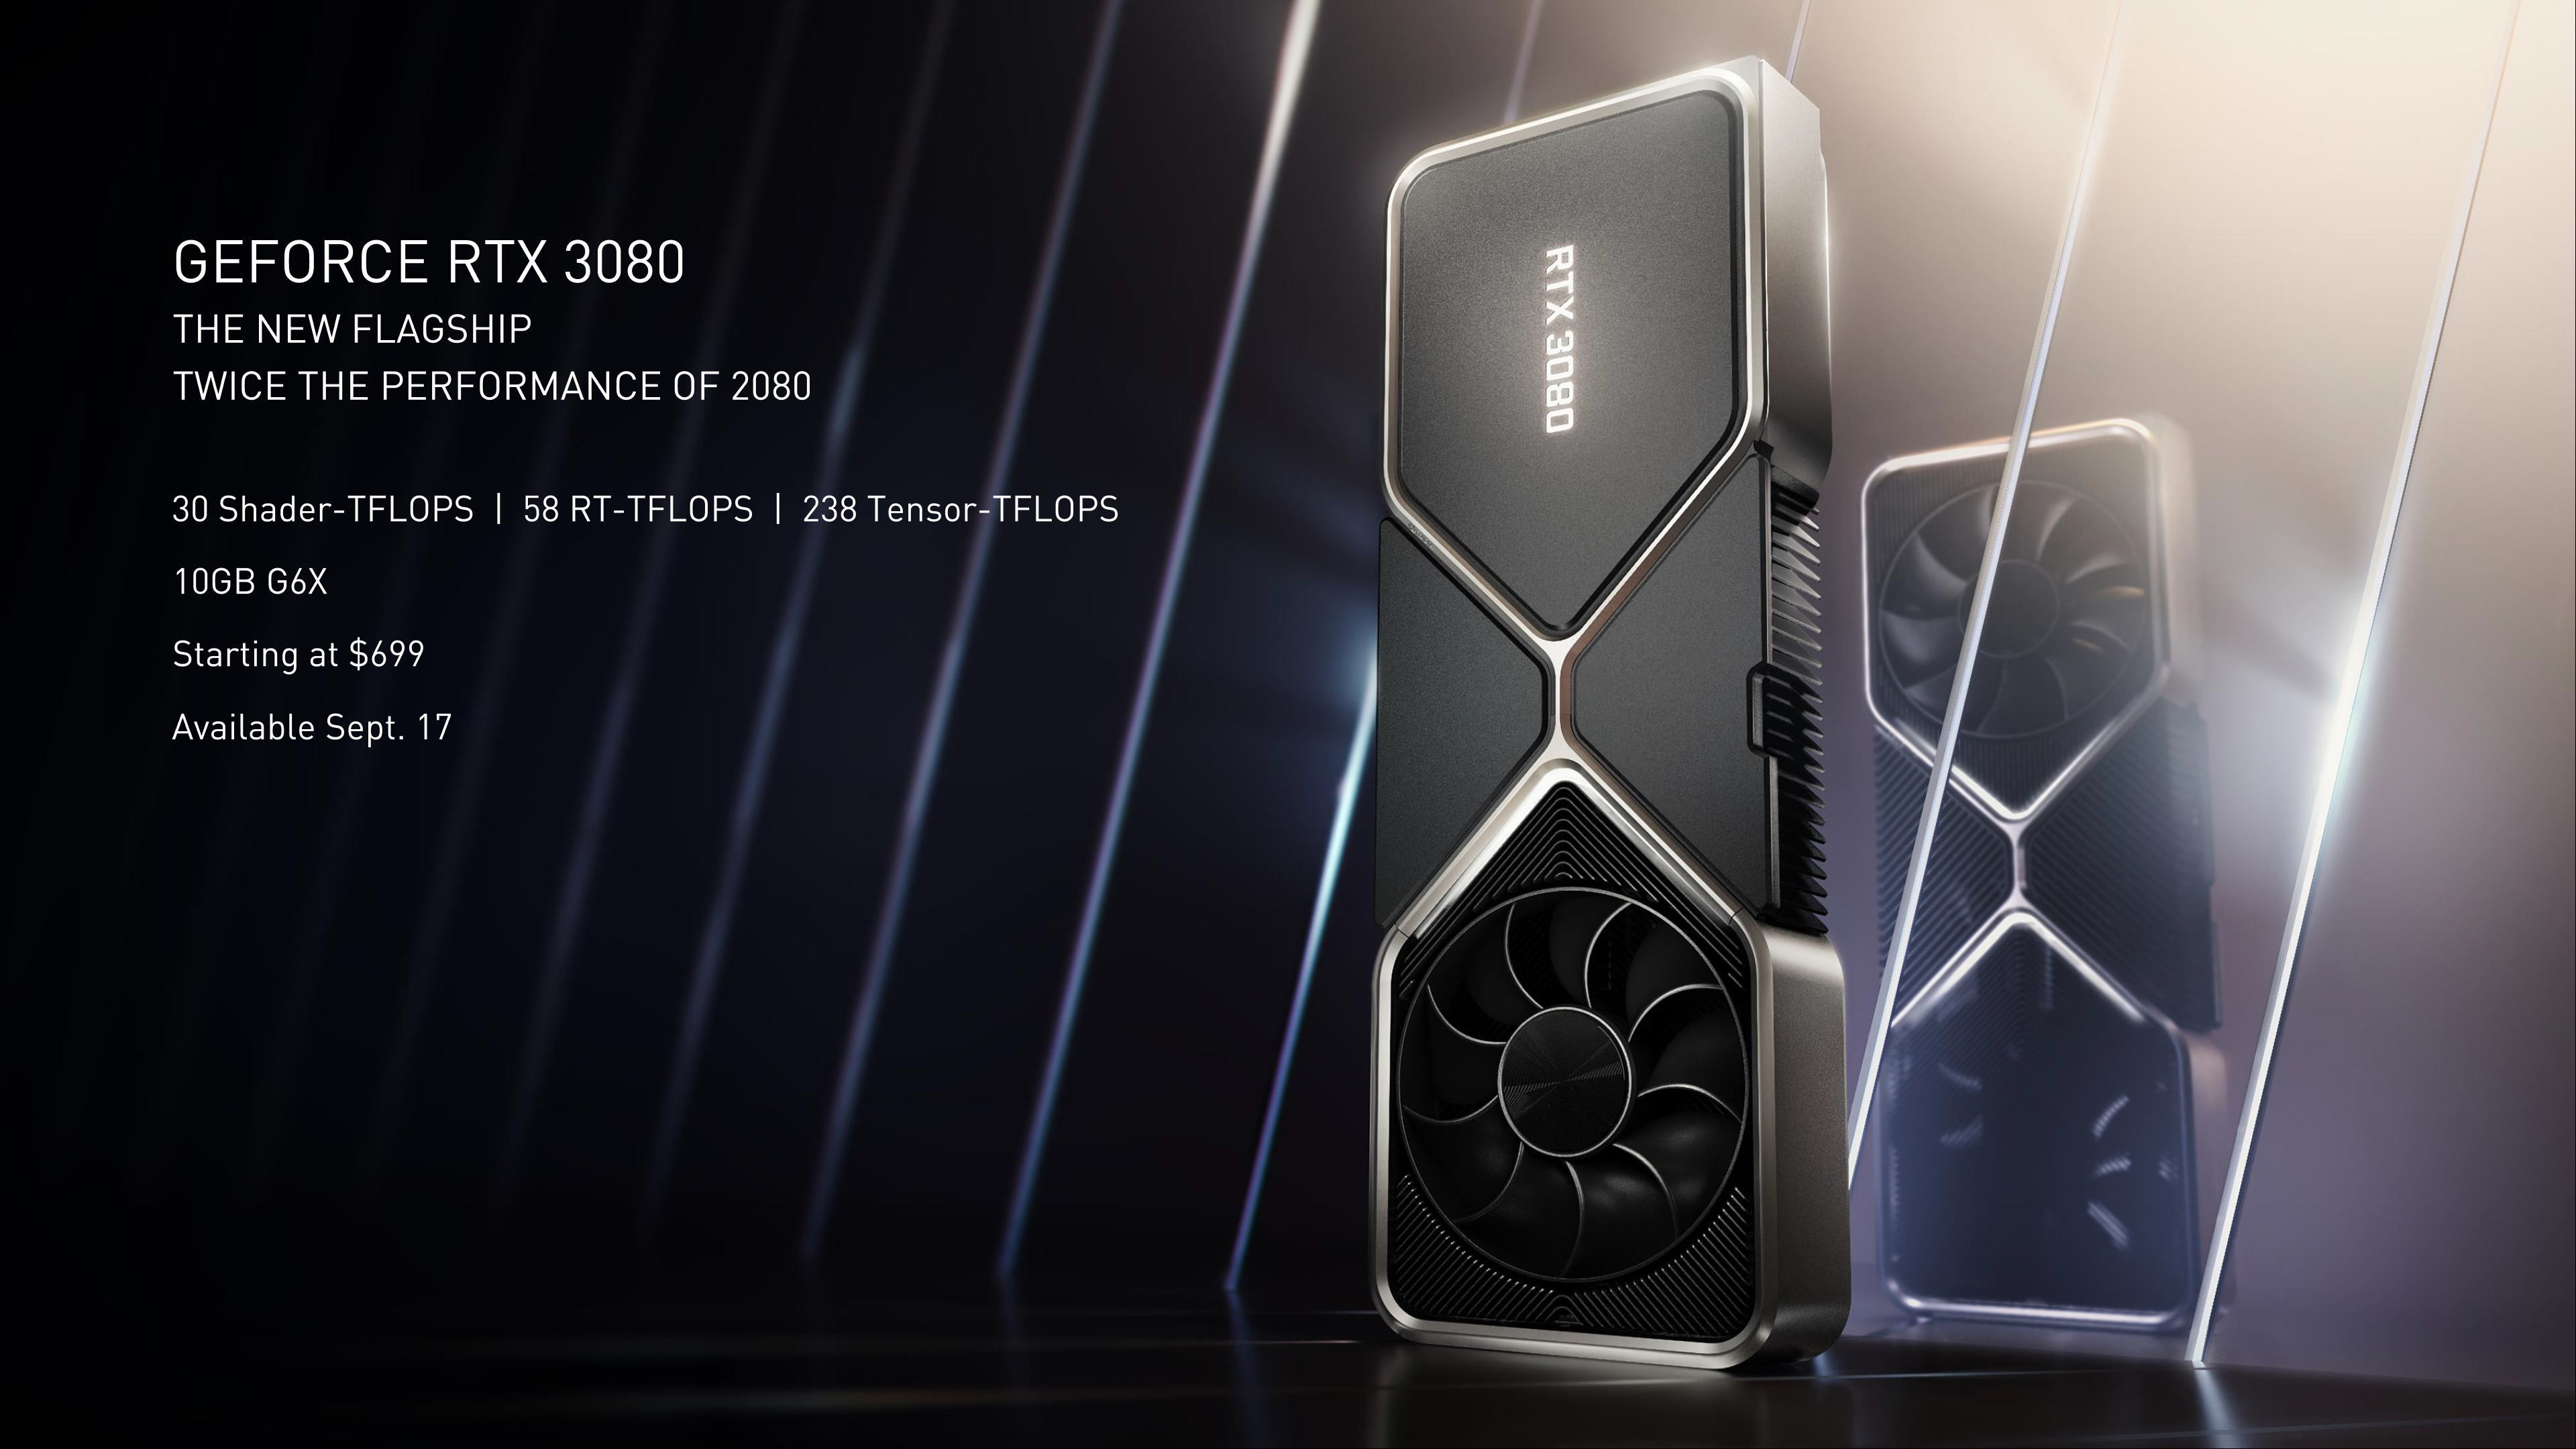 Nvidia Geforce Rtx 3080 Ethereum Mining Performance Leaks Out Most profitable coins for geforce rtx 3080. nvidia geforce rtx 3080 ethereum mining